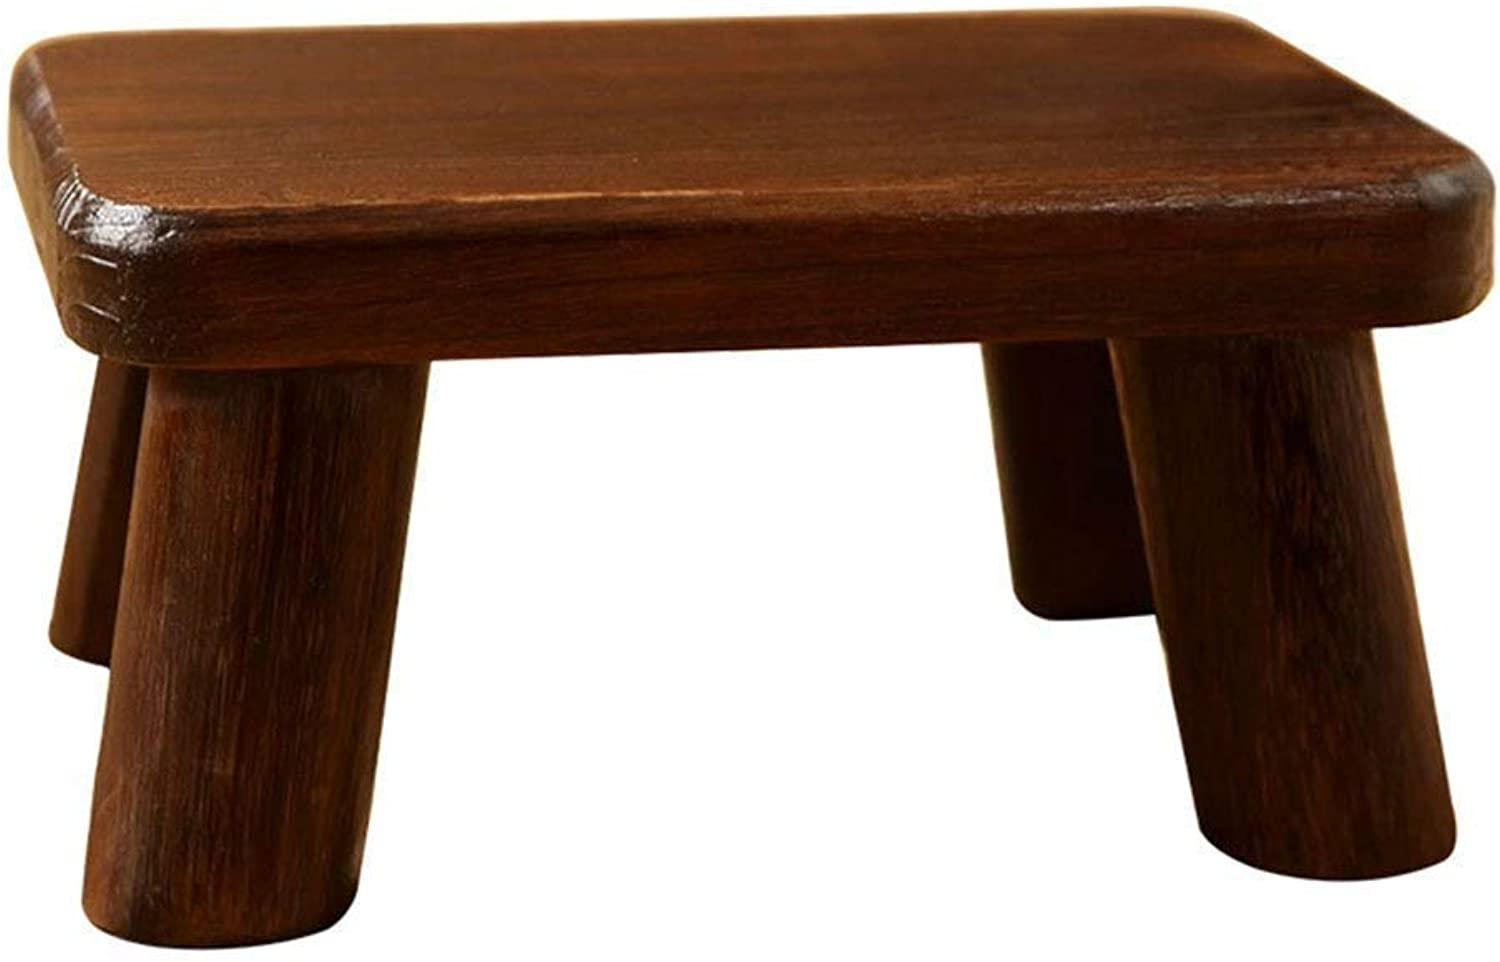 Wooden Stool Footstool, Makeup Change shoes Bench, Solid Wood Sofa Stool